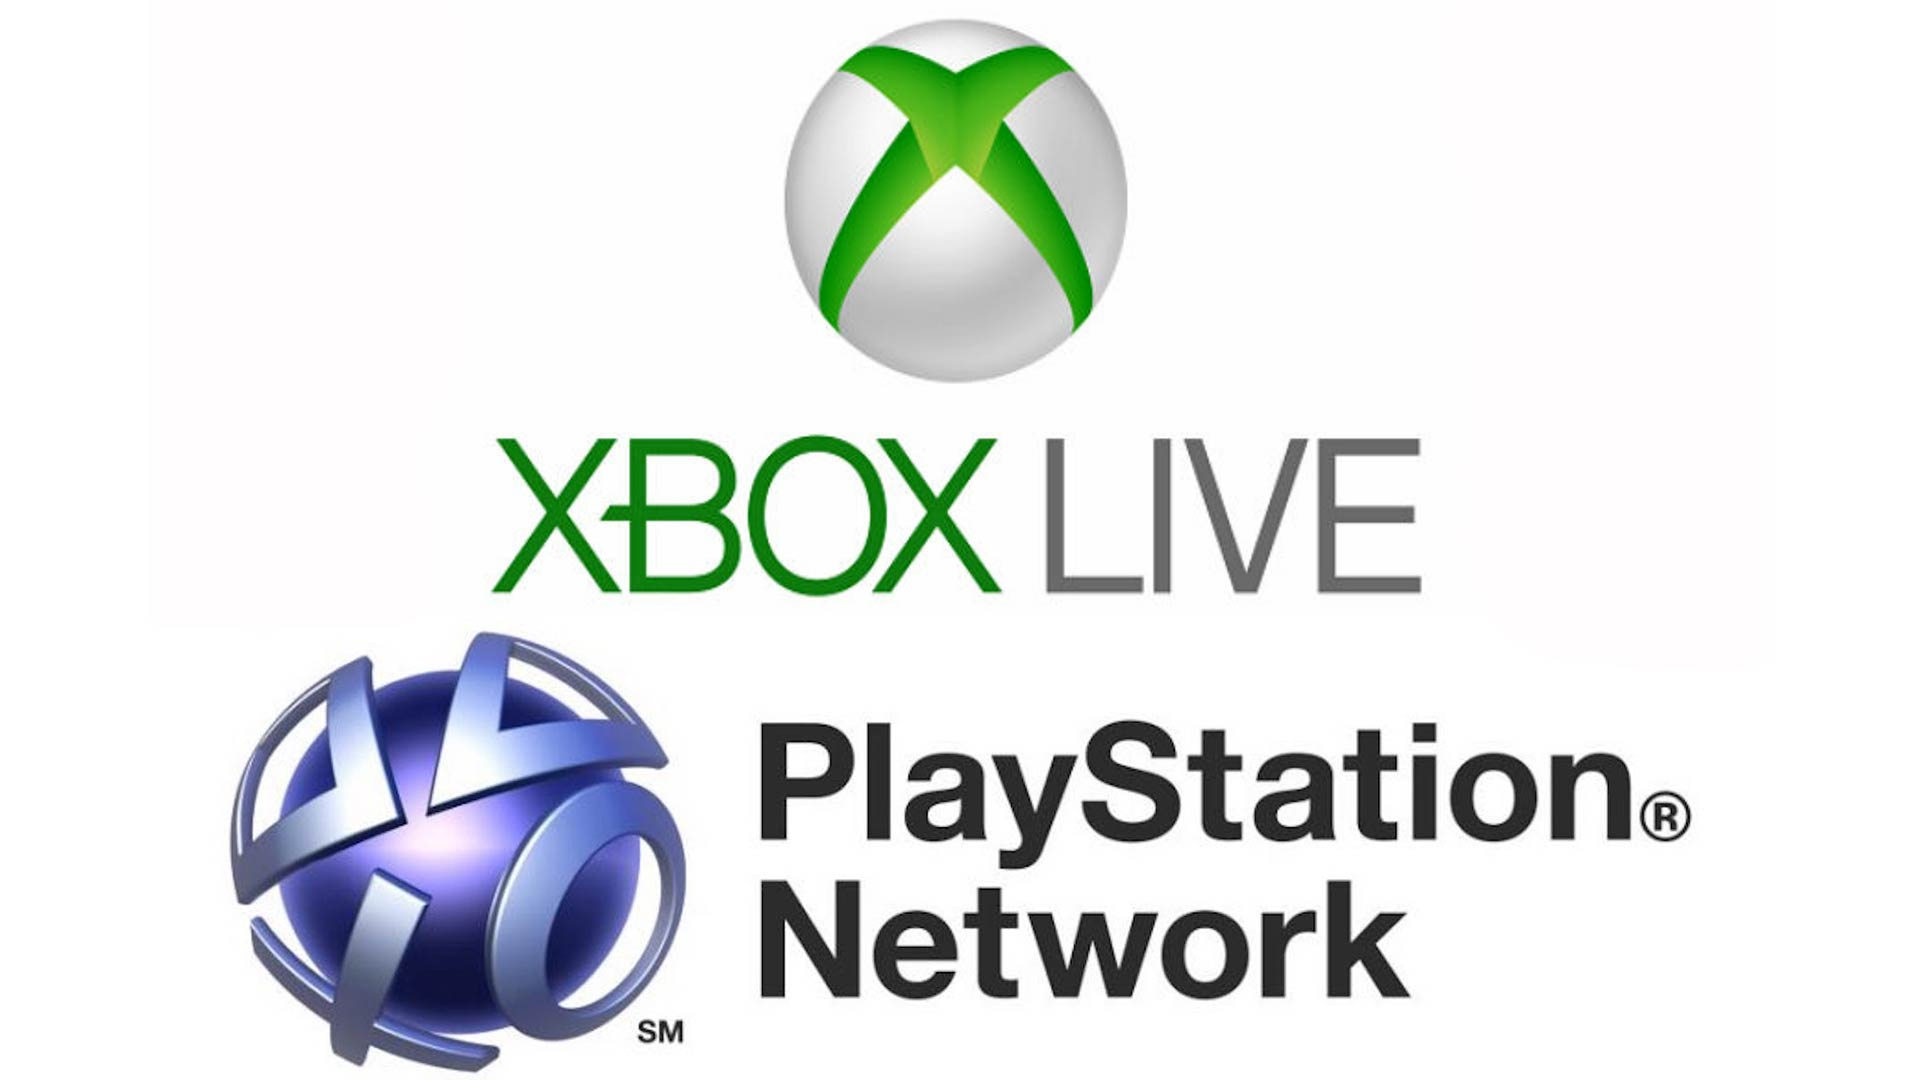 Xbox Live and PlayStation Network